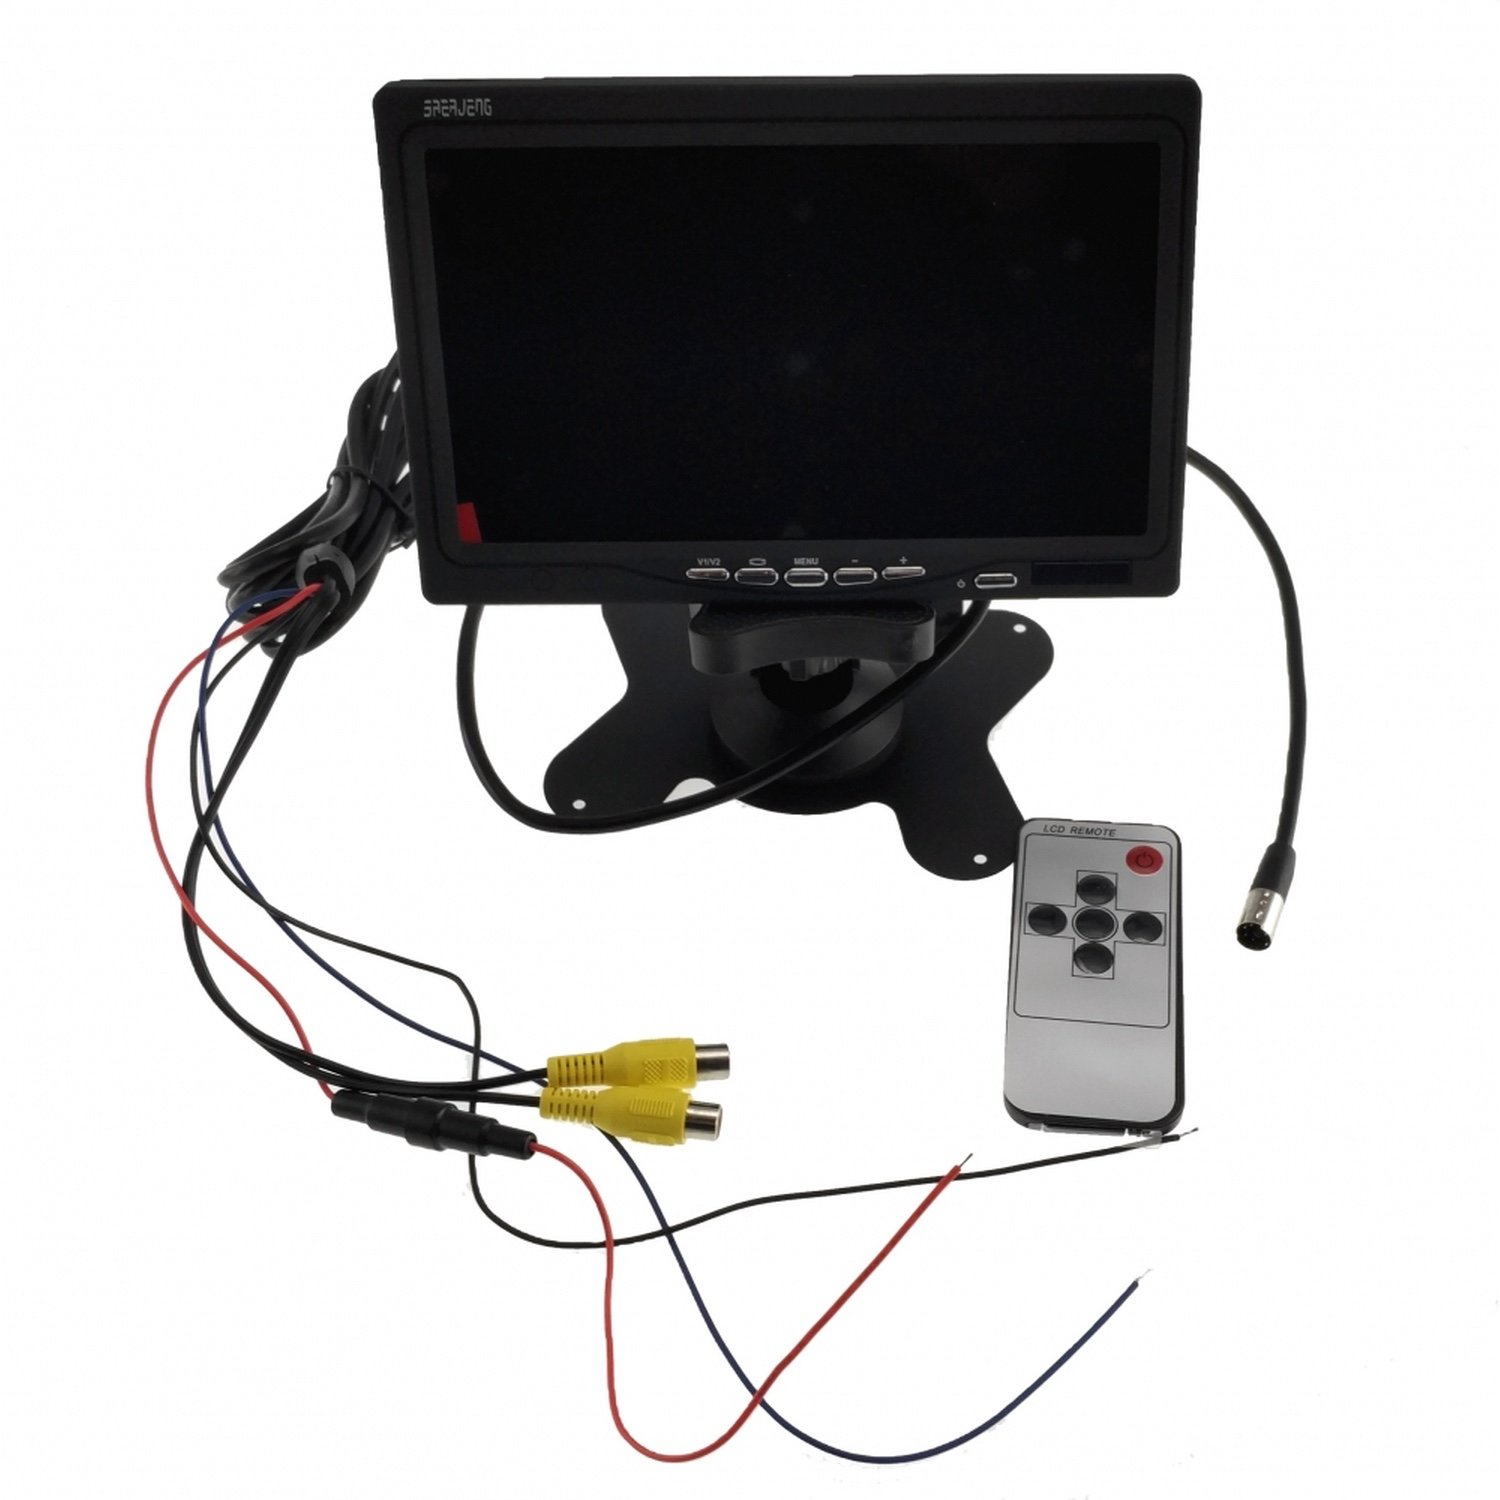 7 Inch Tft Color Lcd Car Rear View Camera Display Support Rotating The Screen And 2 Av Inputs автокосметика рейтинг